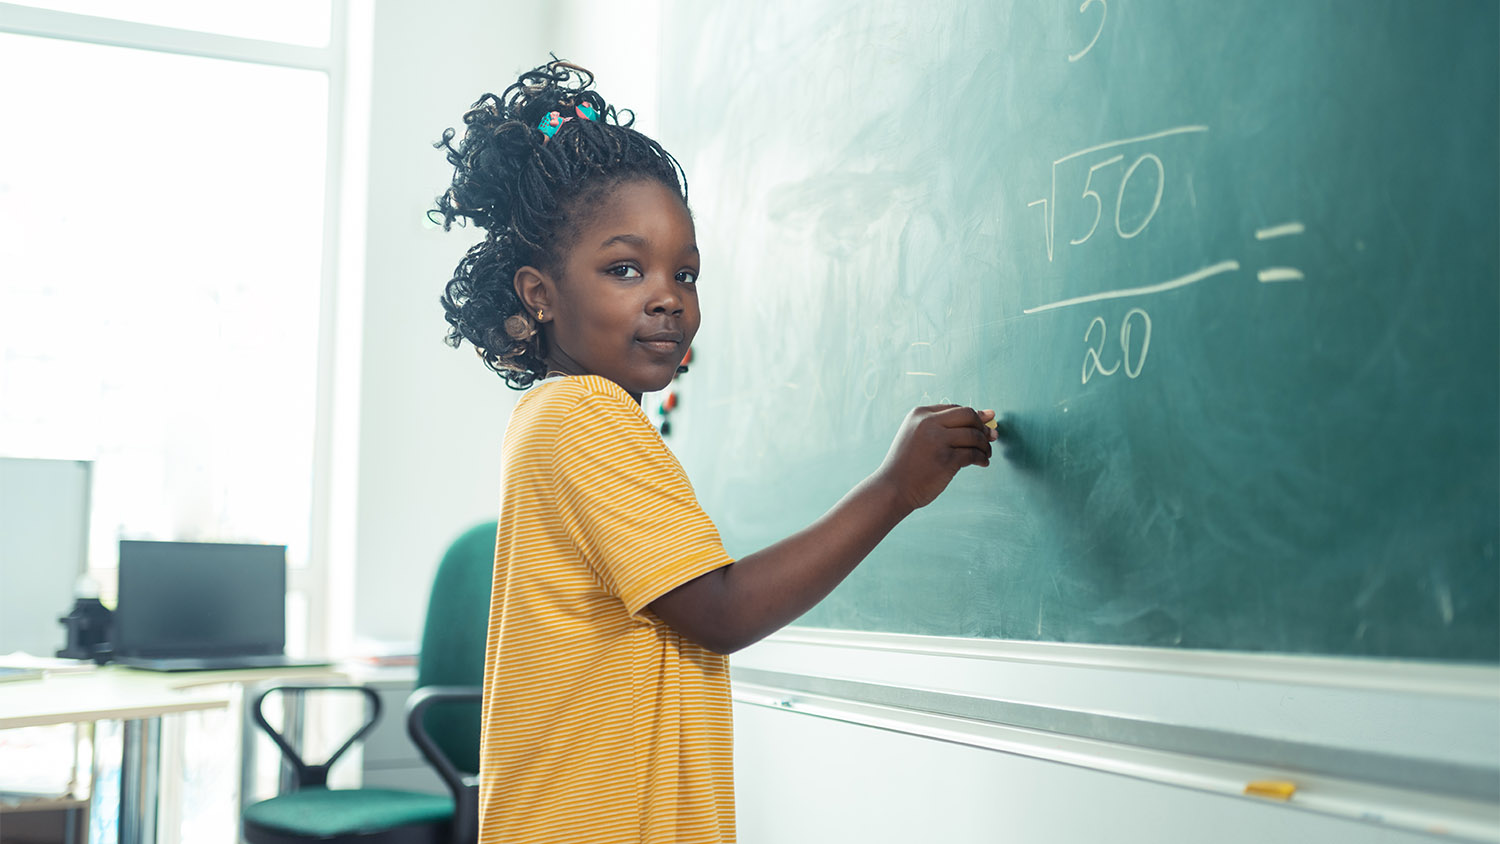 School girl thinking what to write on a blackboard.